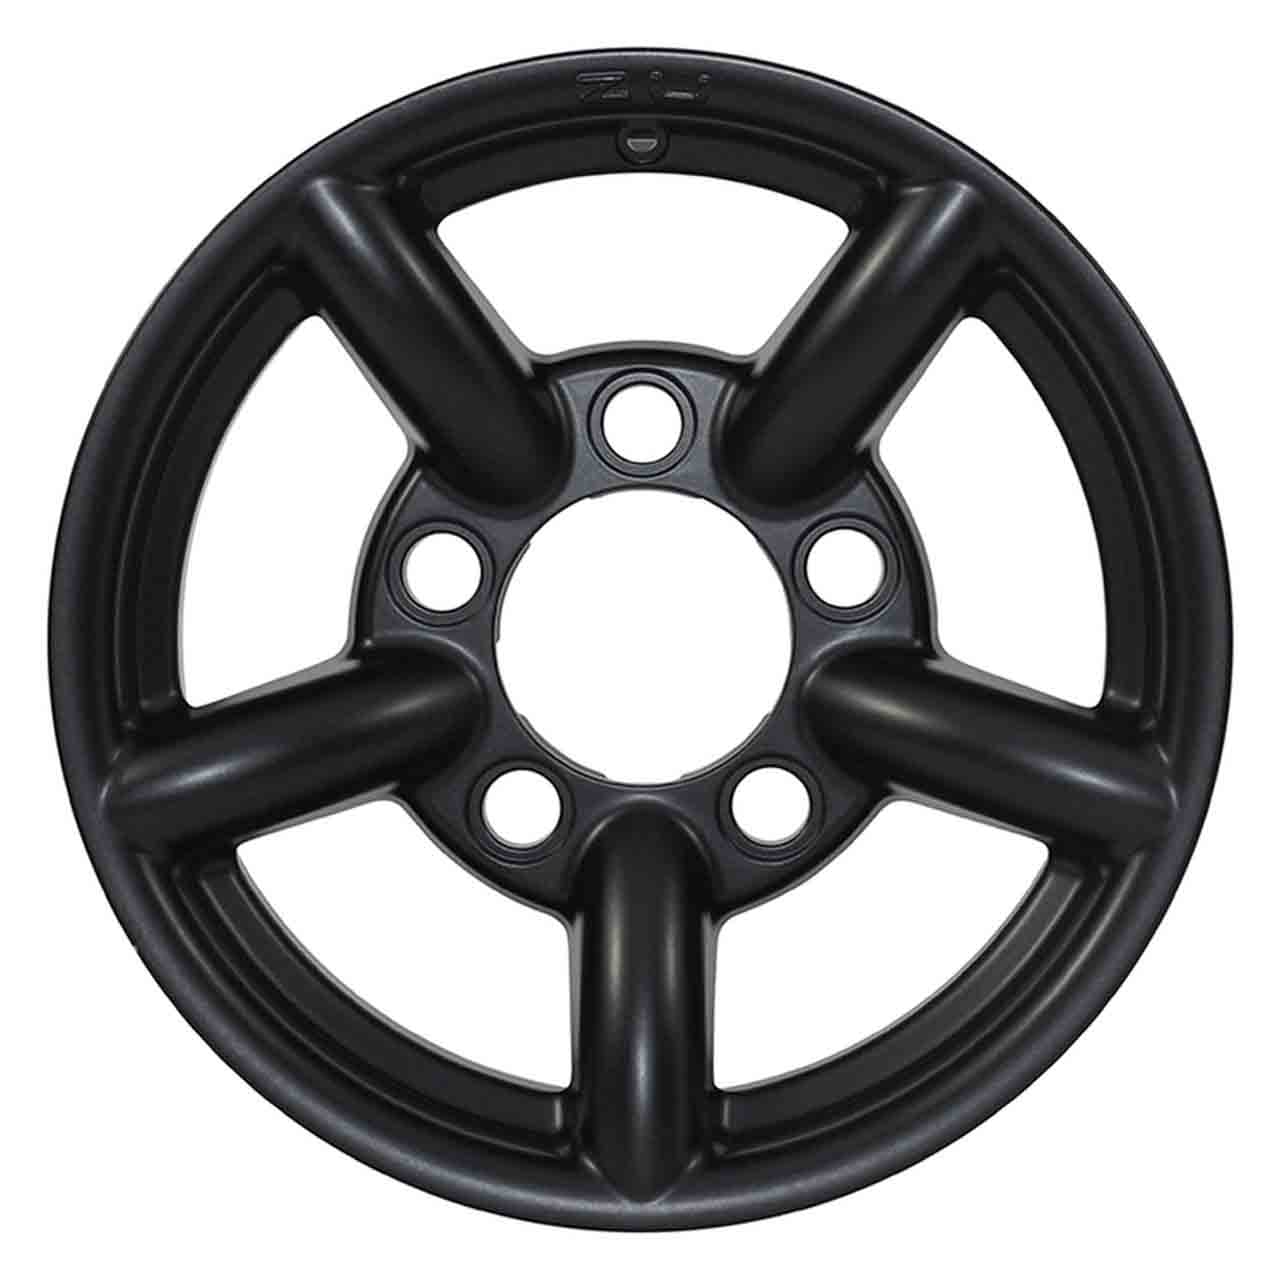 Defender Discovery 1 Range Rover Classic Ruota 16 X 7 Colore Nero Opaco GR2-05765